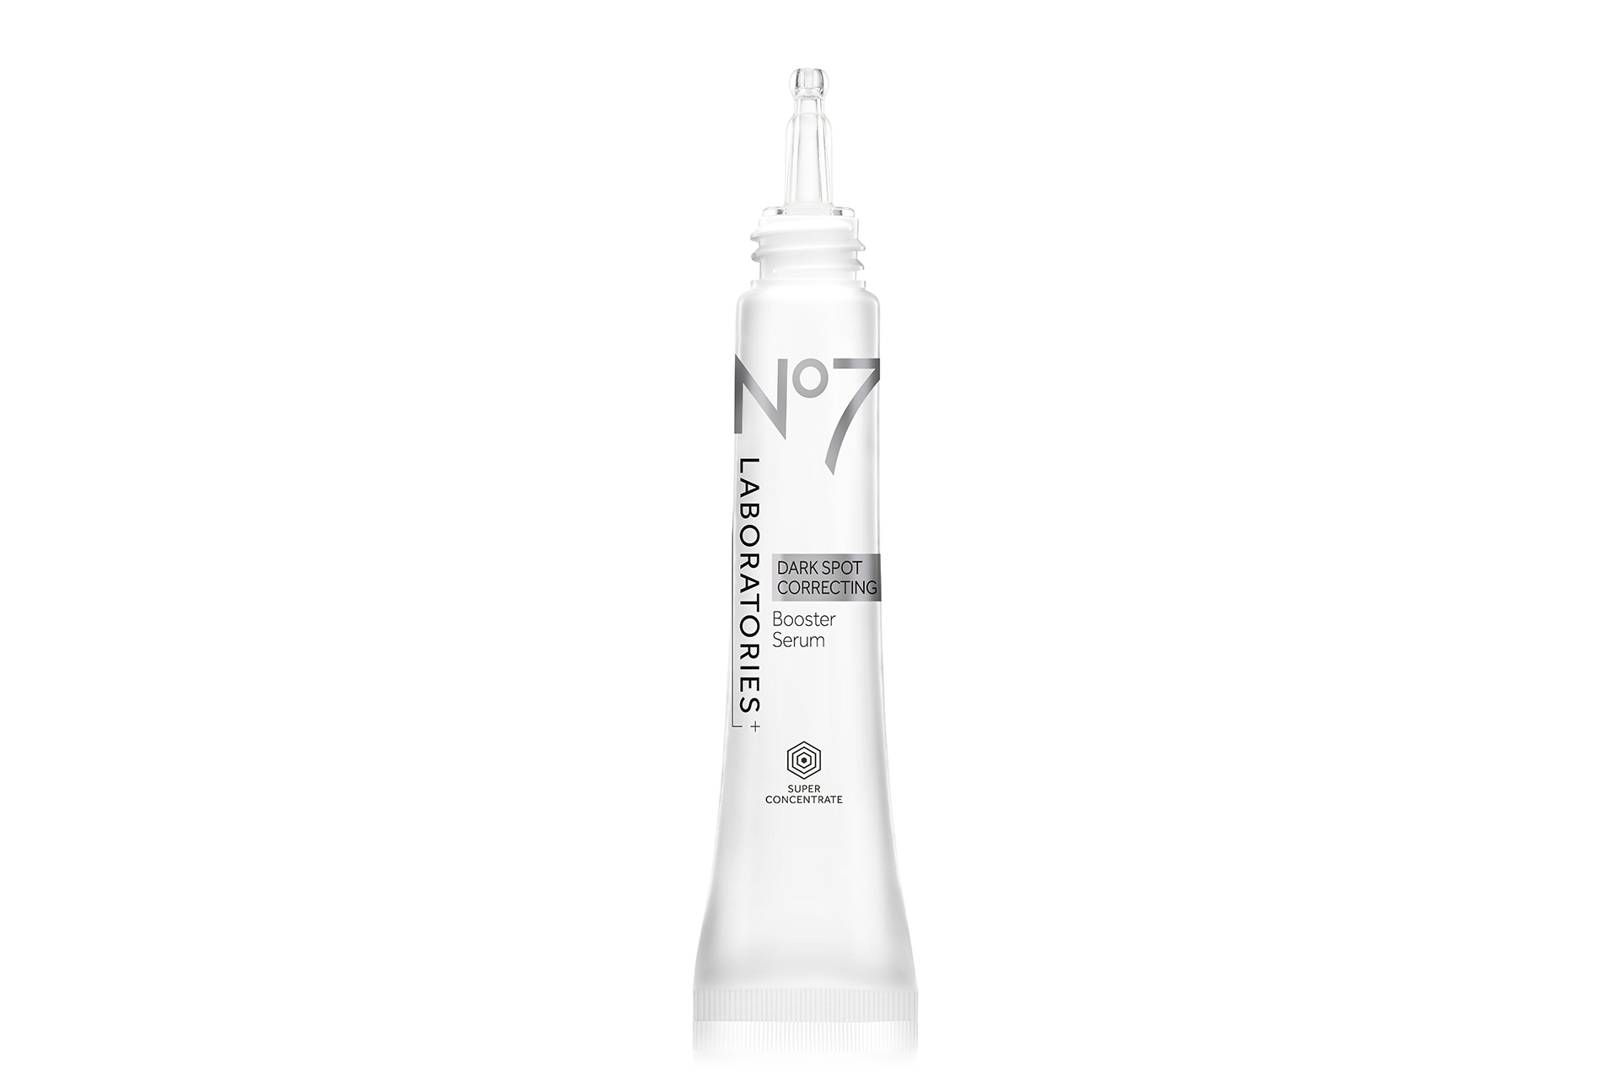 Boots No 7's New Serums Have Thousands Of People On The